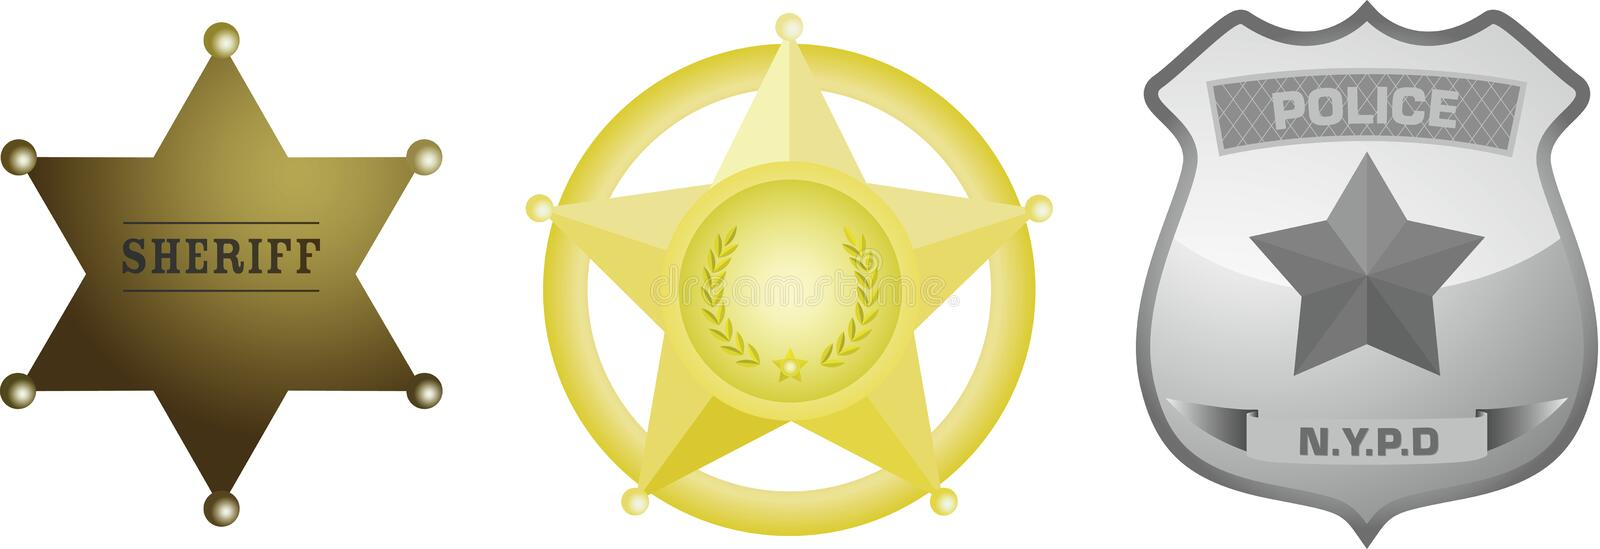 Police Sheriff Badge stock illustration